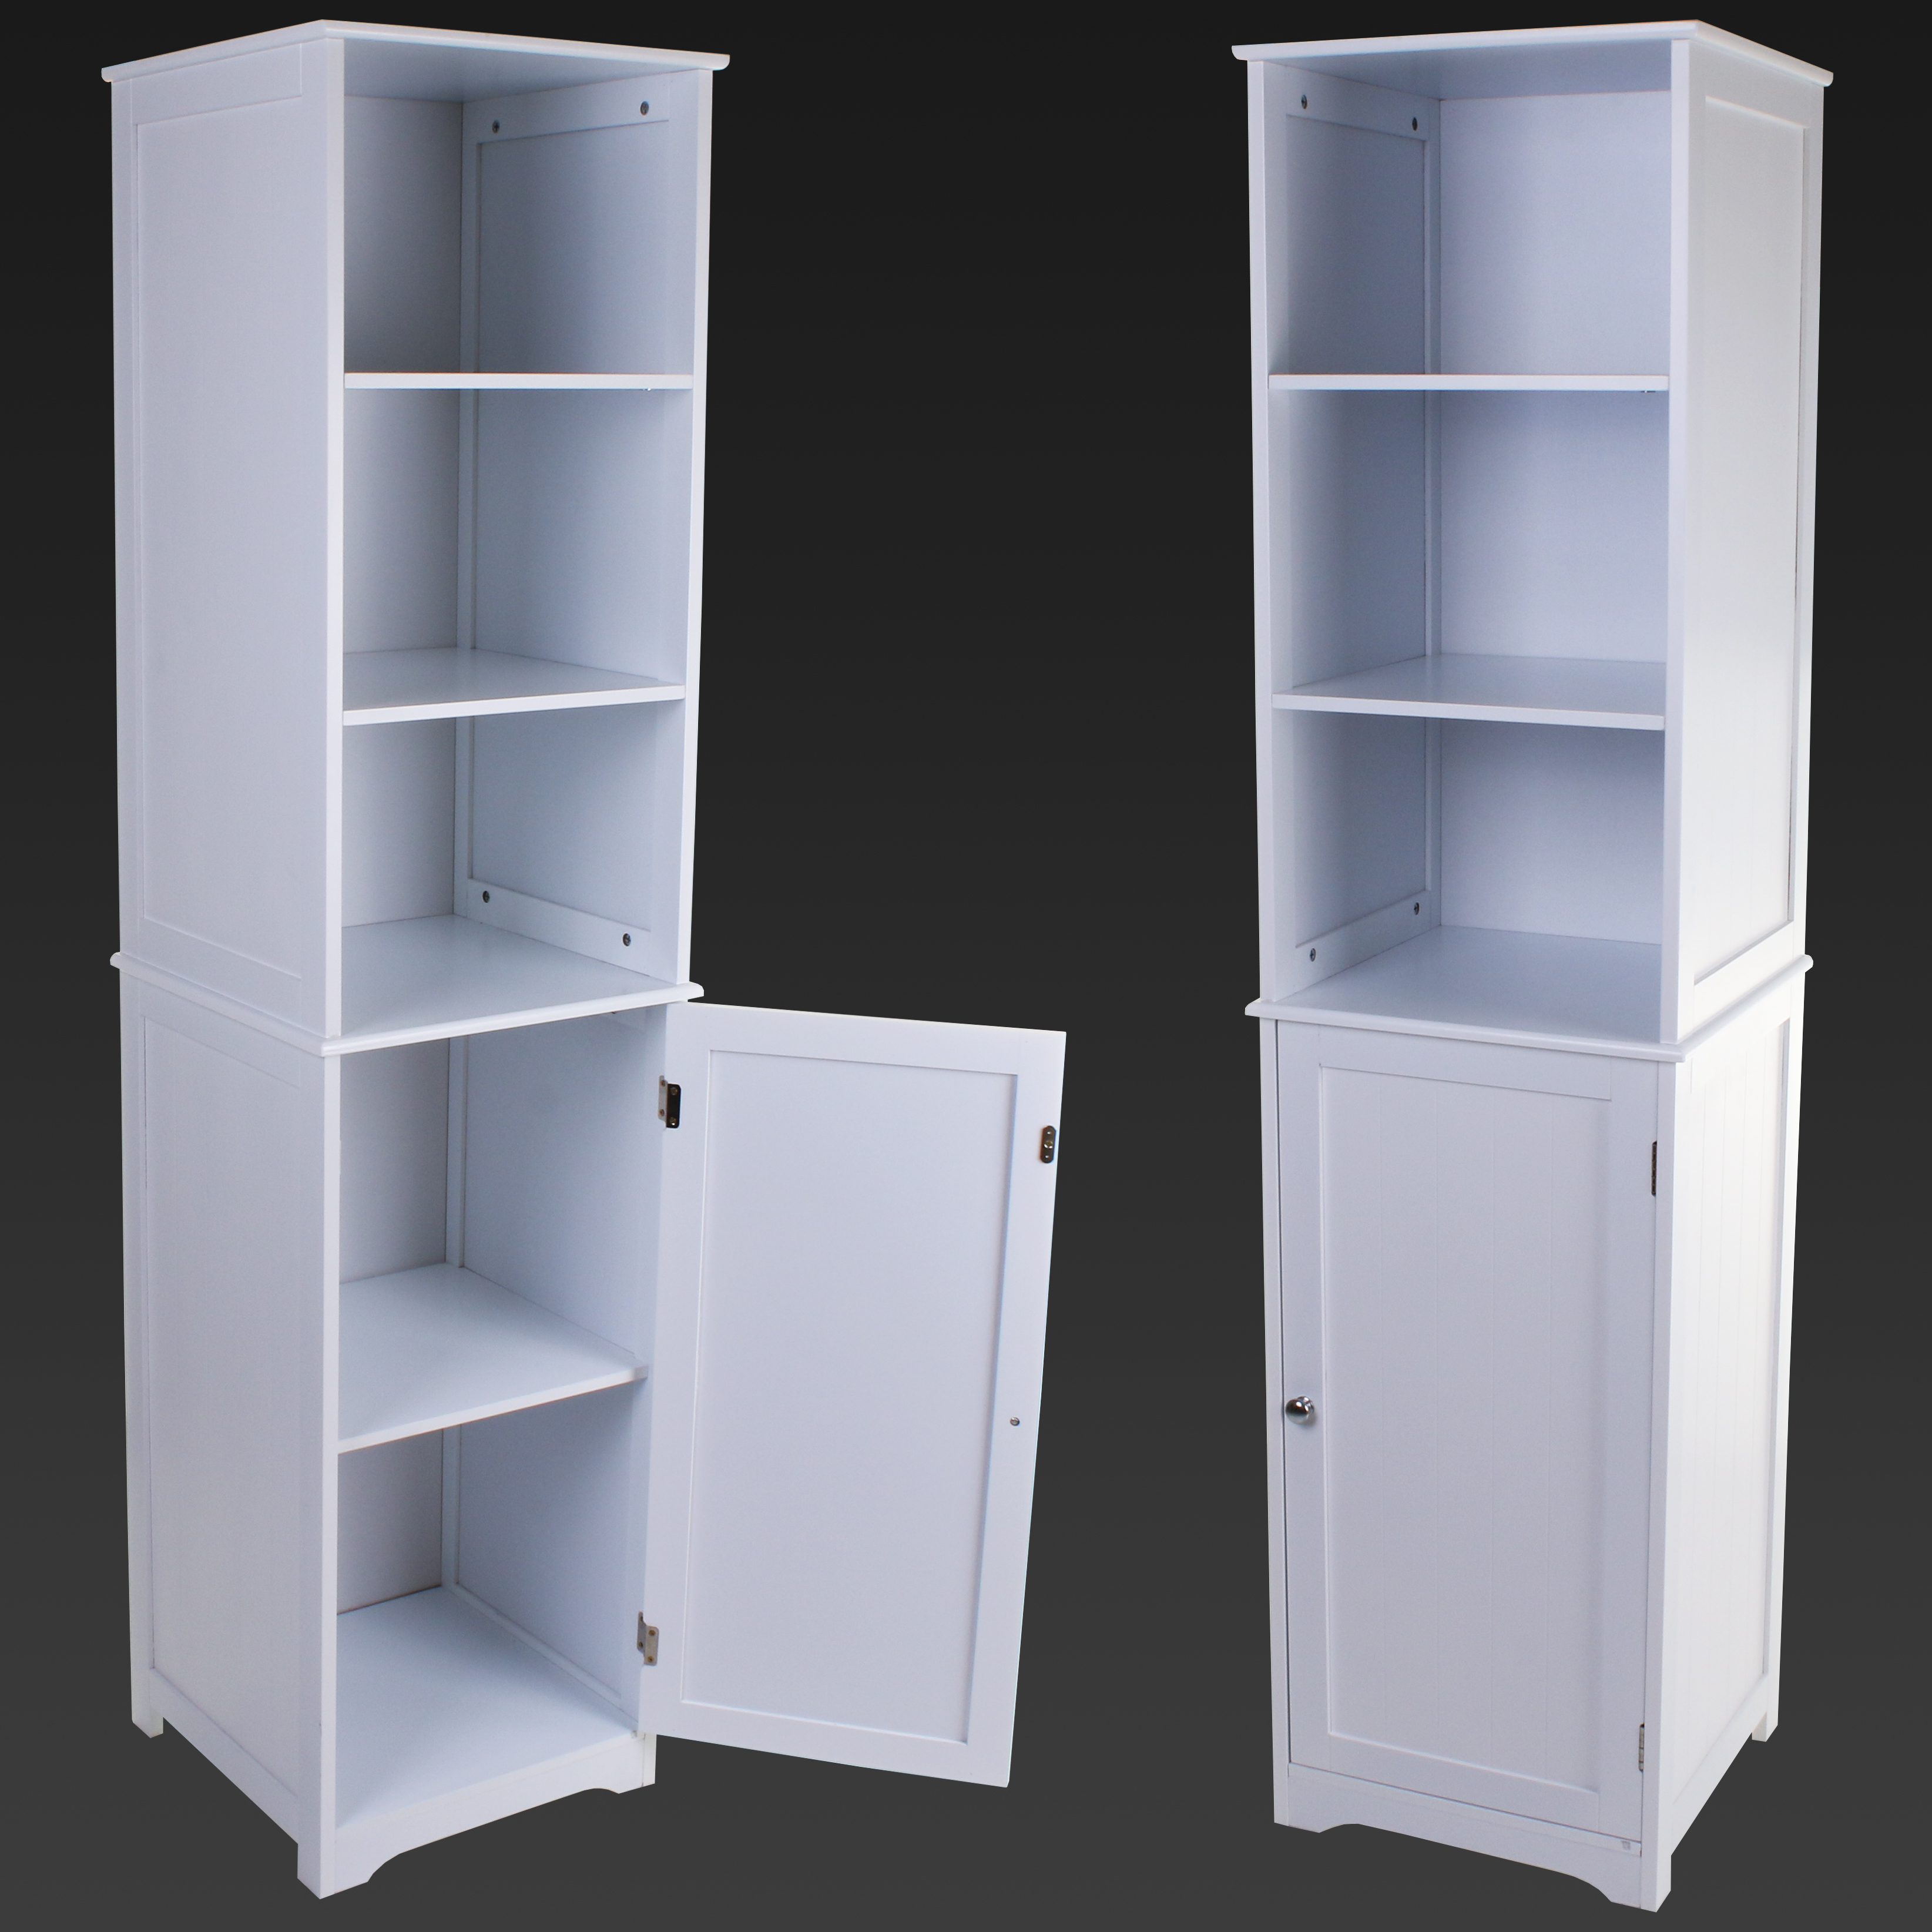 TALL BOY WOODEN STORAGE UNIT CUPBOARD CABINET SHELVING SHELVES BATHROOM UNIT  eBay